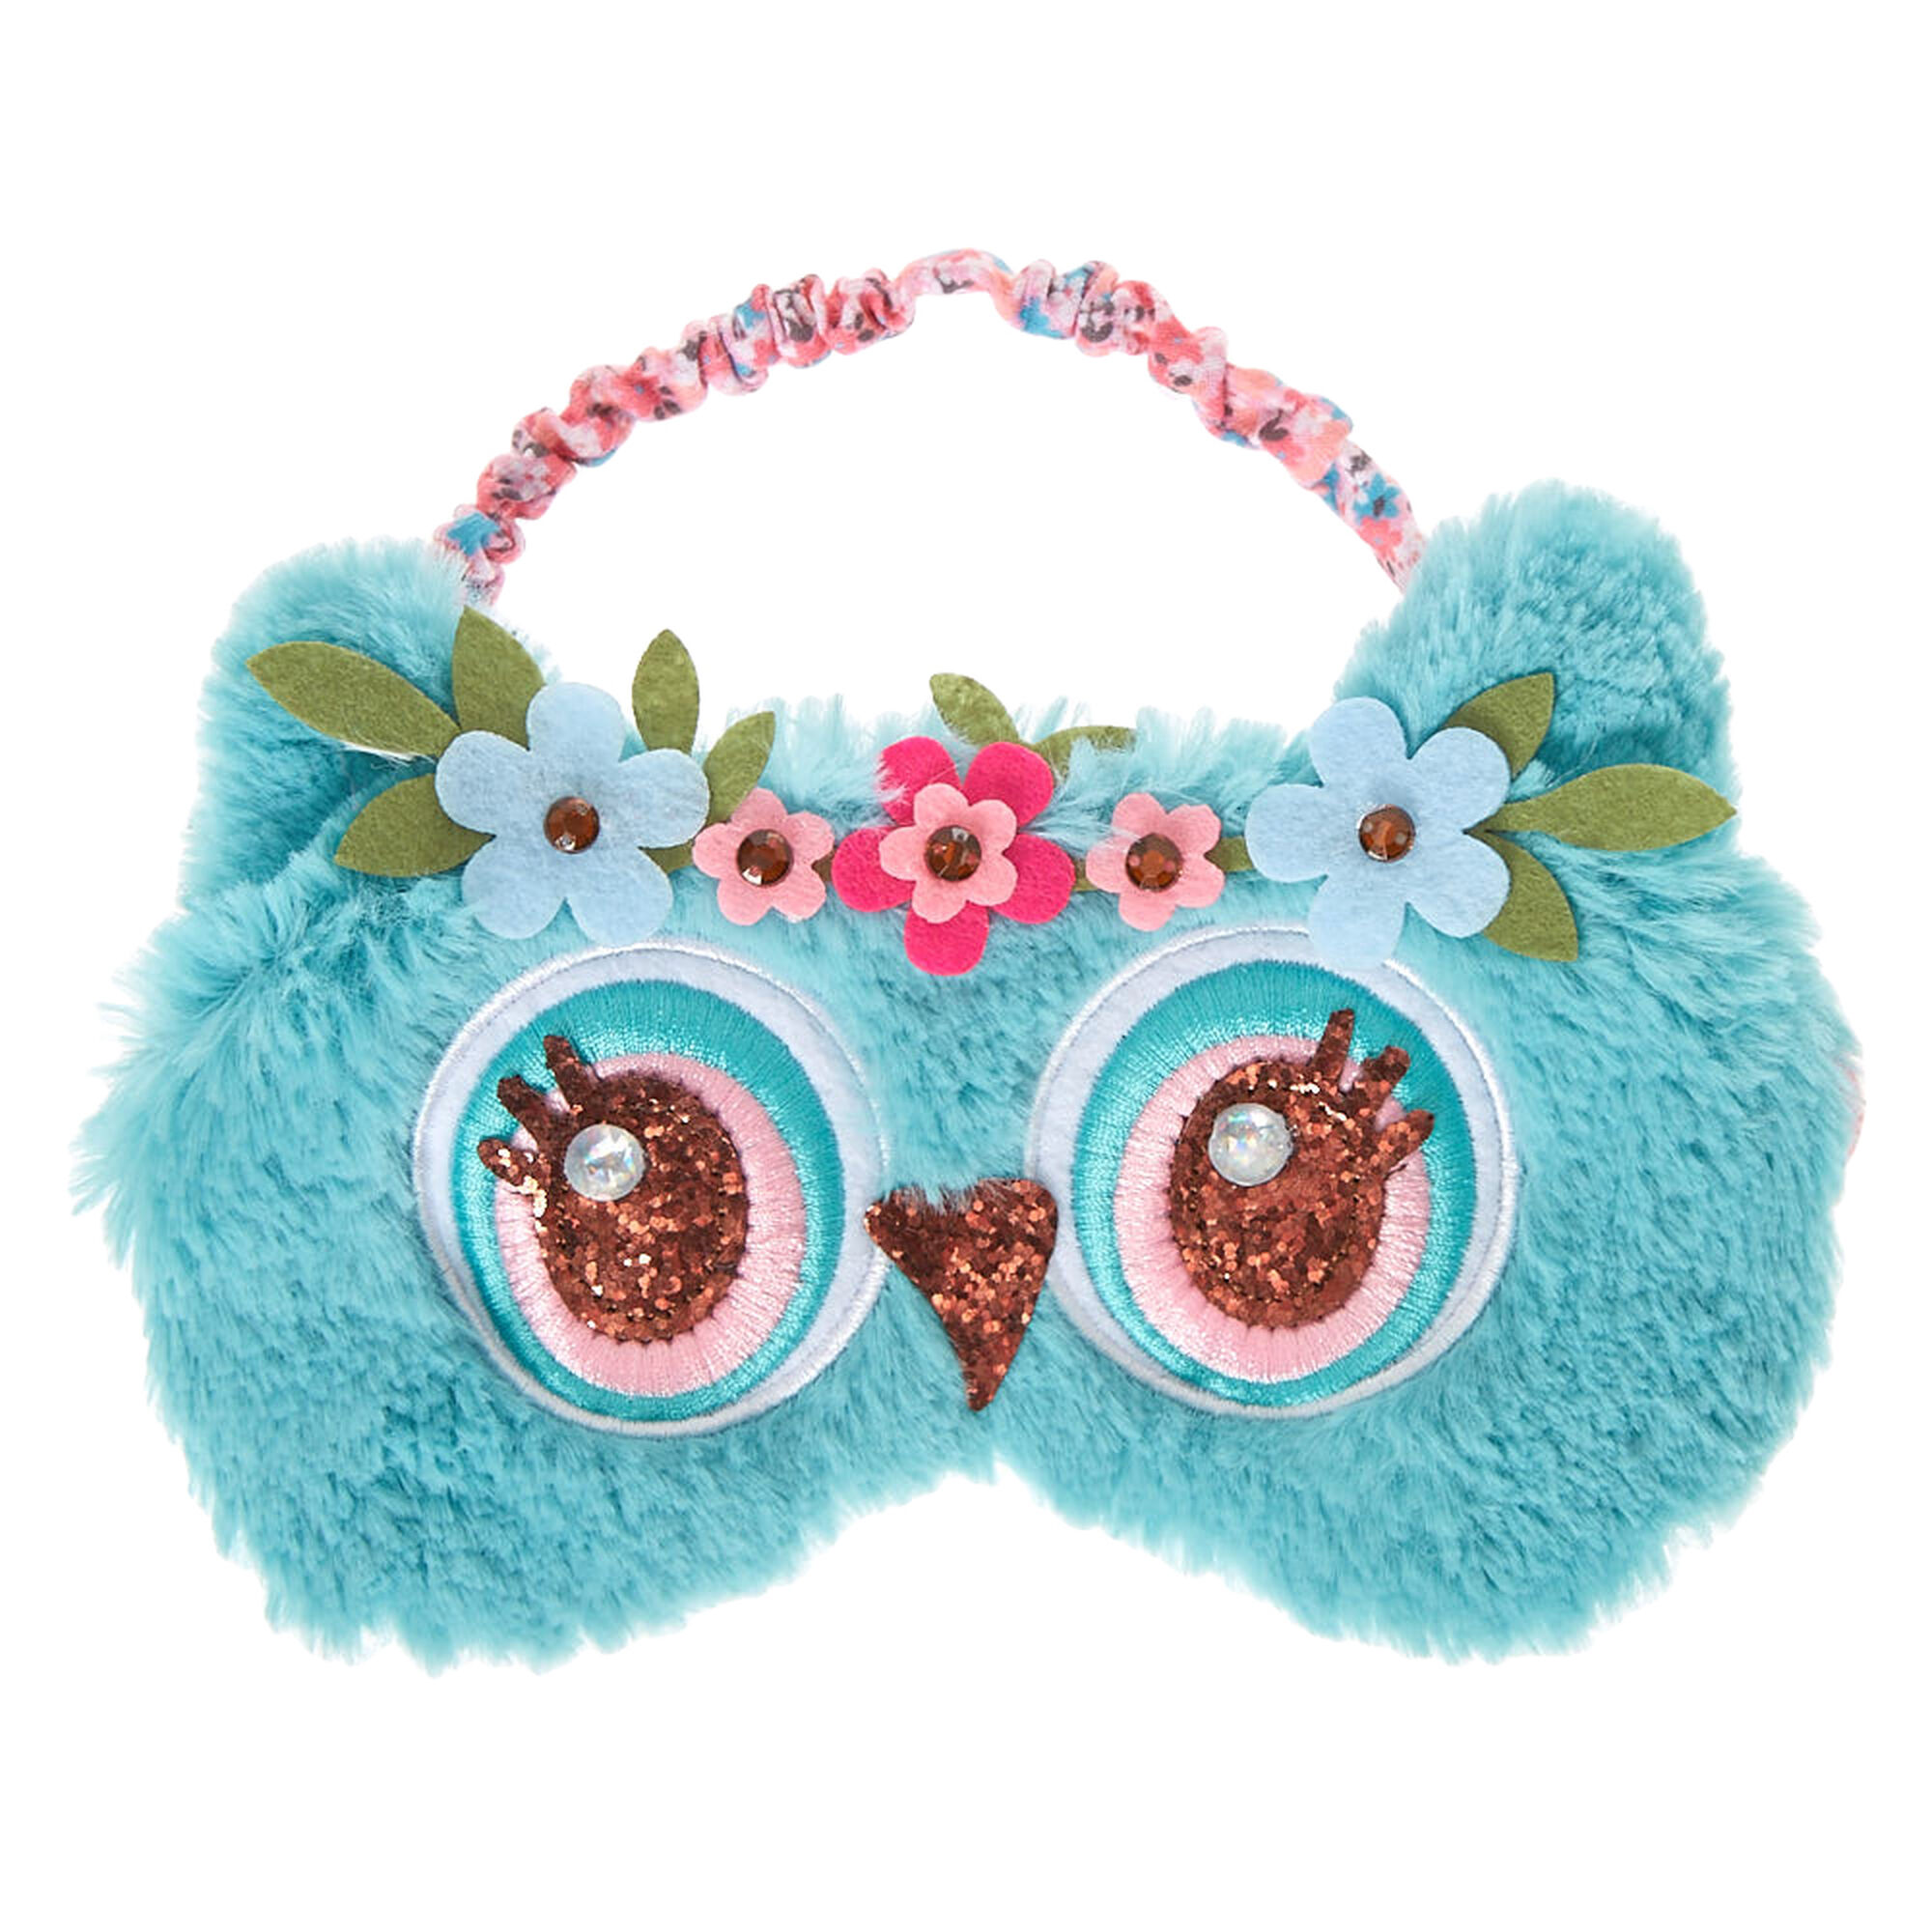 Pediatric CPAP Masks. This type of mask was specifically designed for children and individuals with petite facial features. Below you will find both nasal and full face masks available in petite sizes.